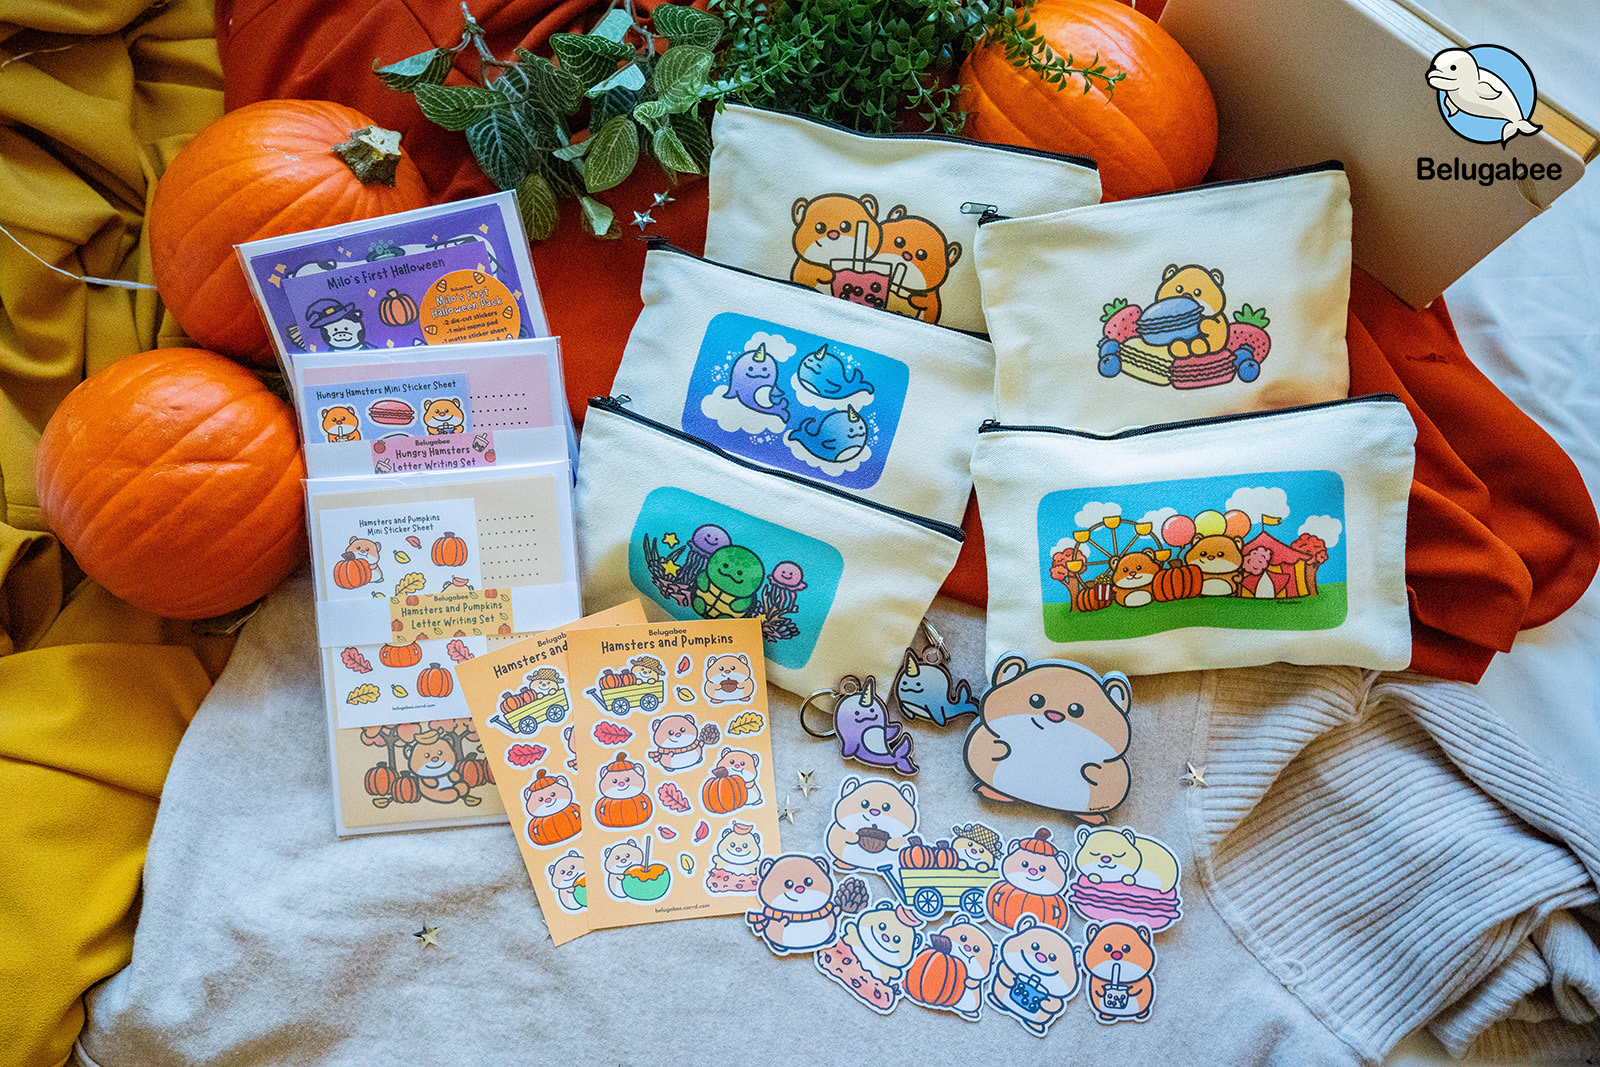 This image showcases some of the products they sell. Such as stickers, stationary and pencil cases.